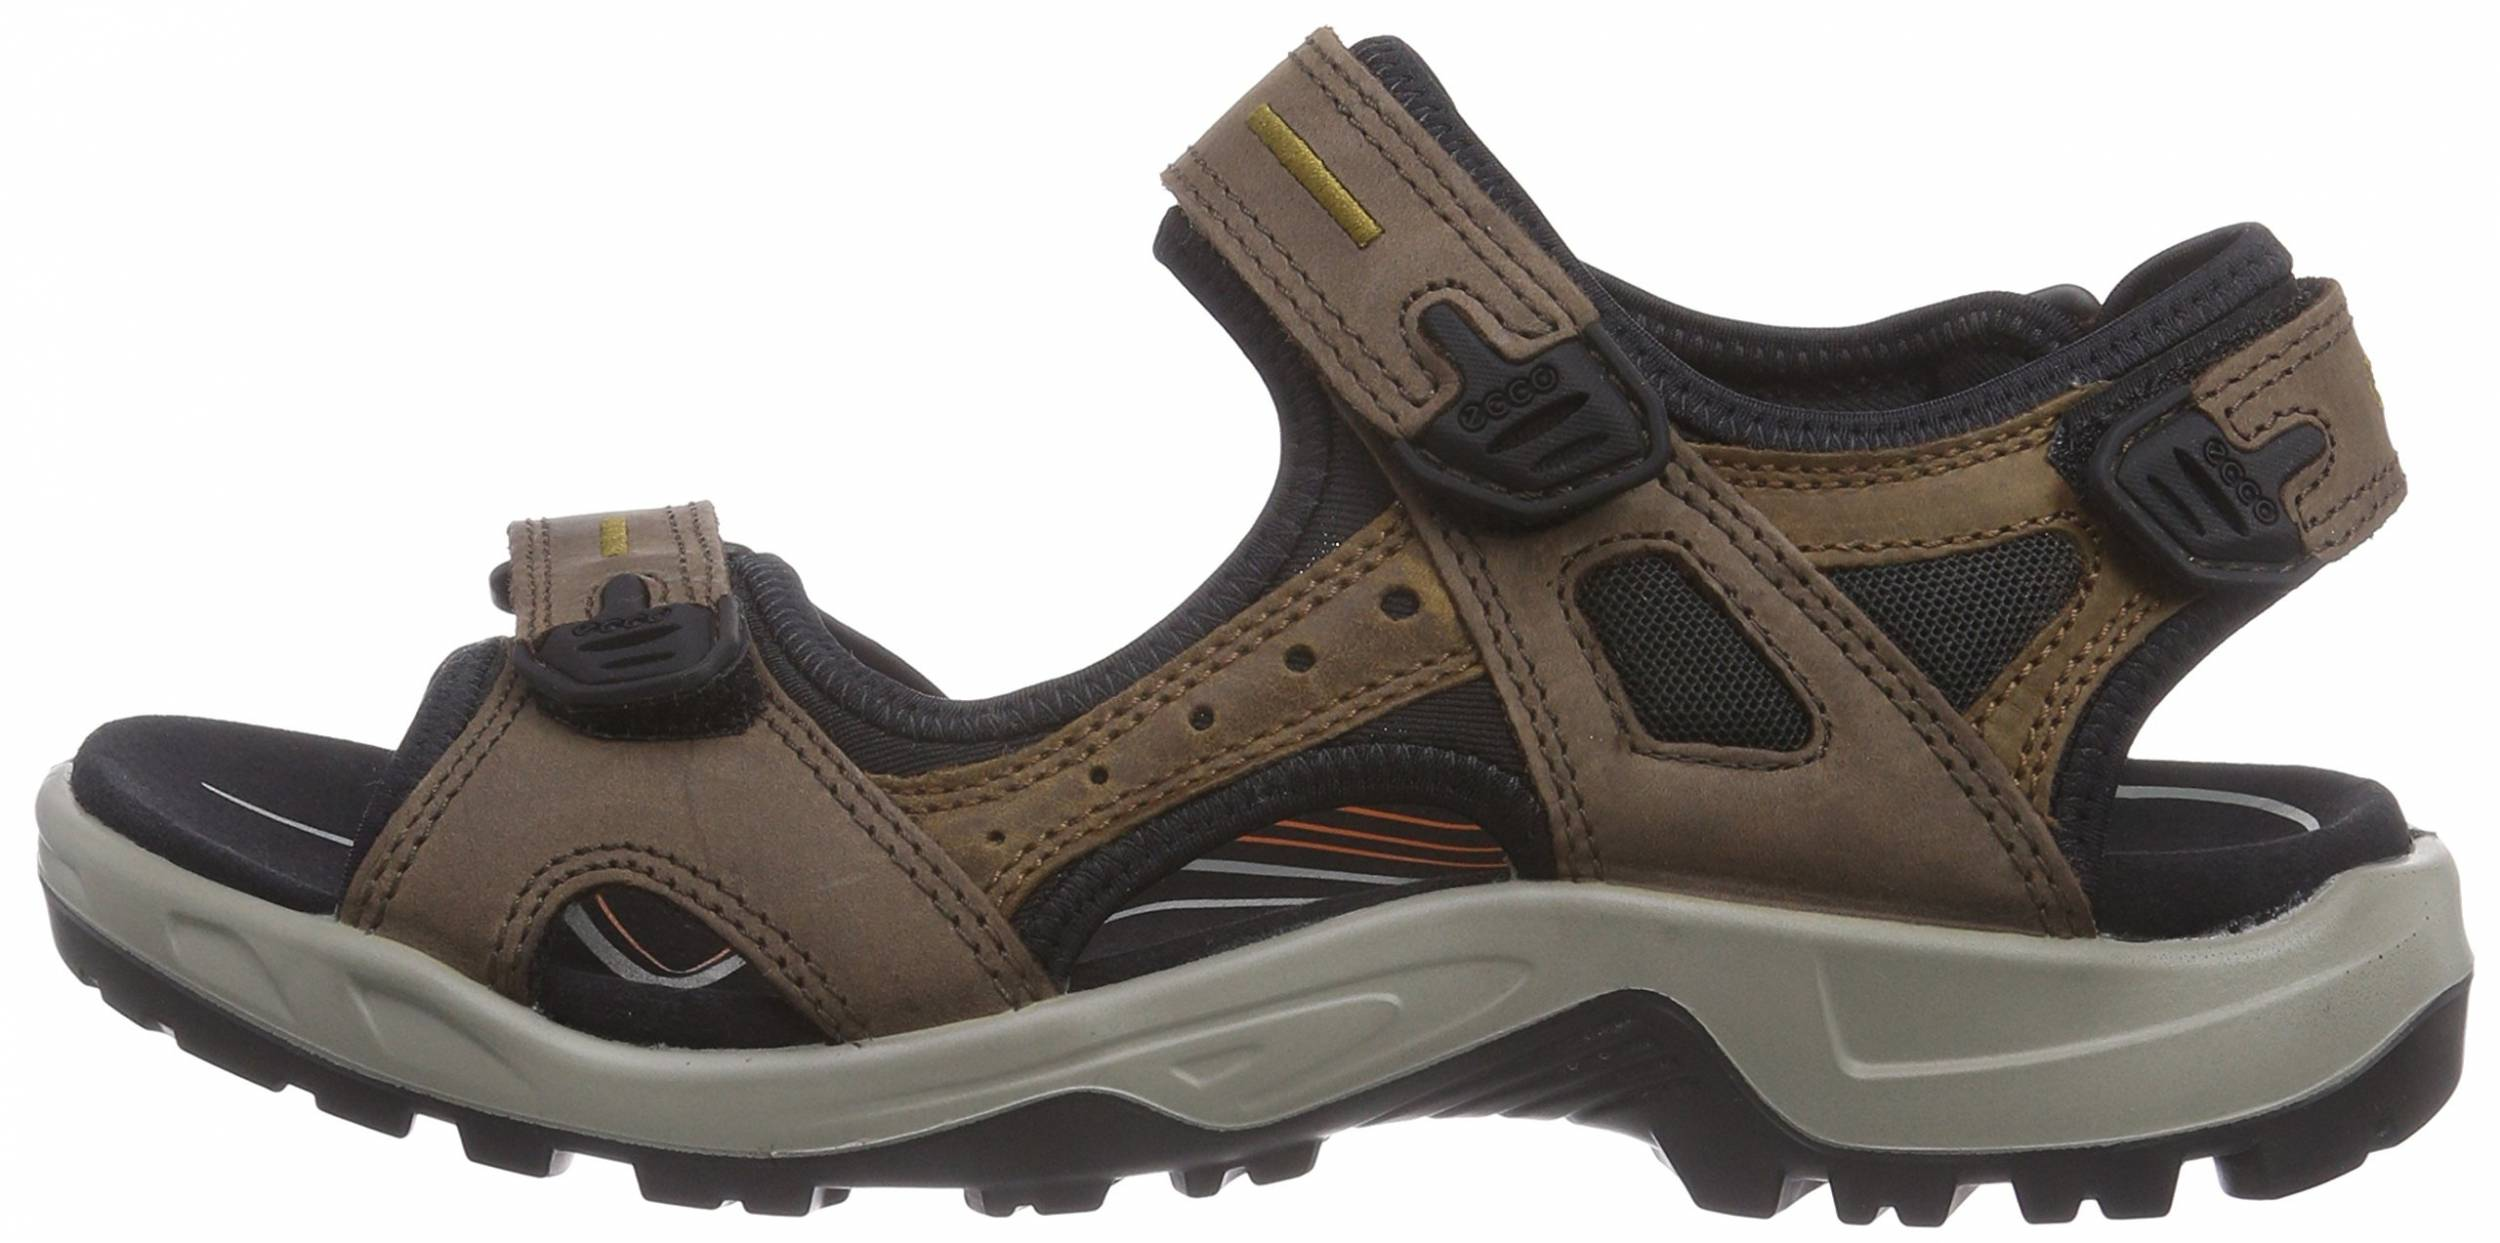 Save 59% on Ecco Hiking Sandals (1